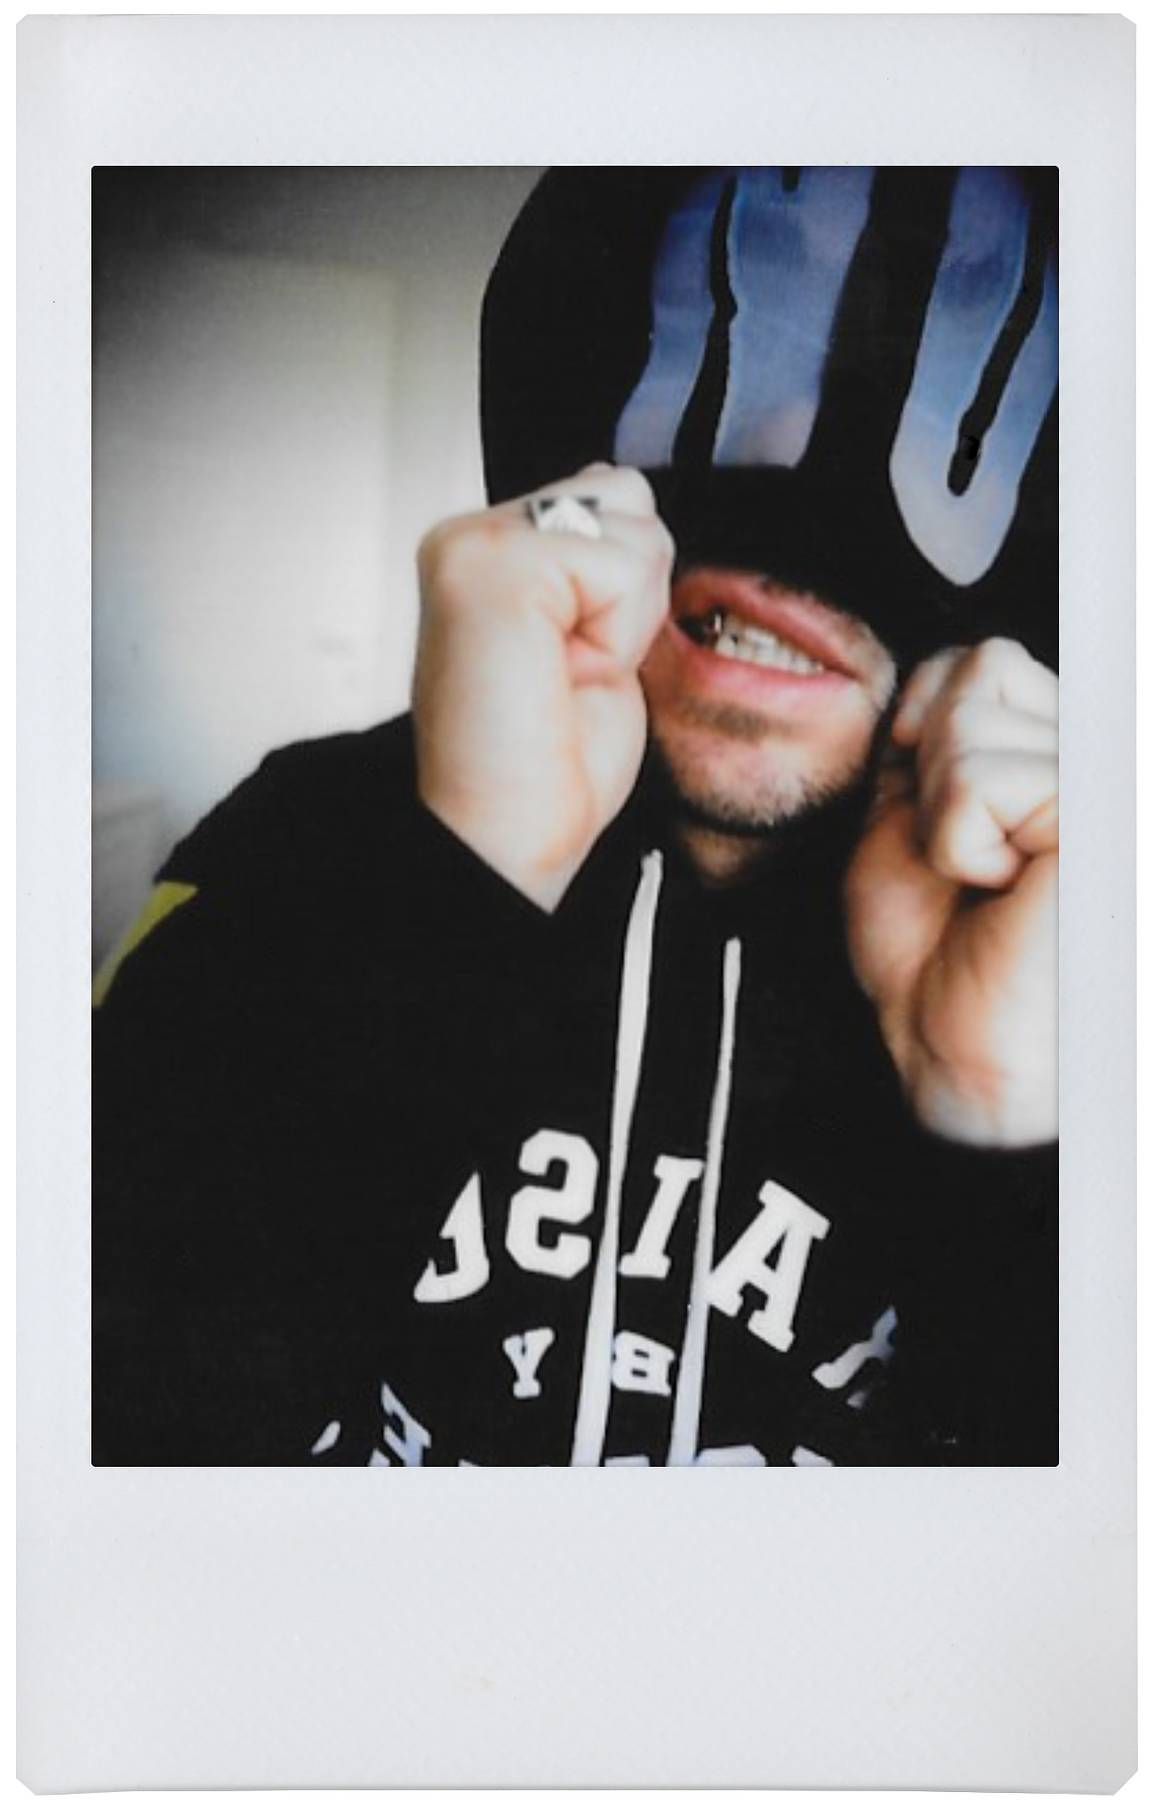 The Bloody Beetroots and the Lomo'Instant Automat Glass: a Punk Love